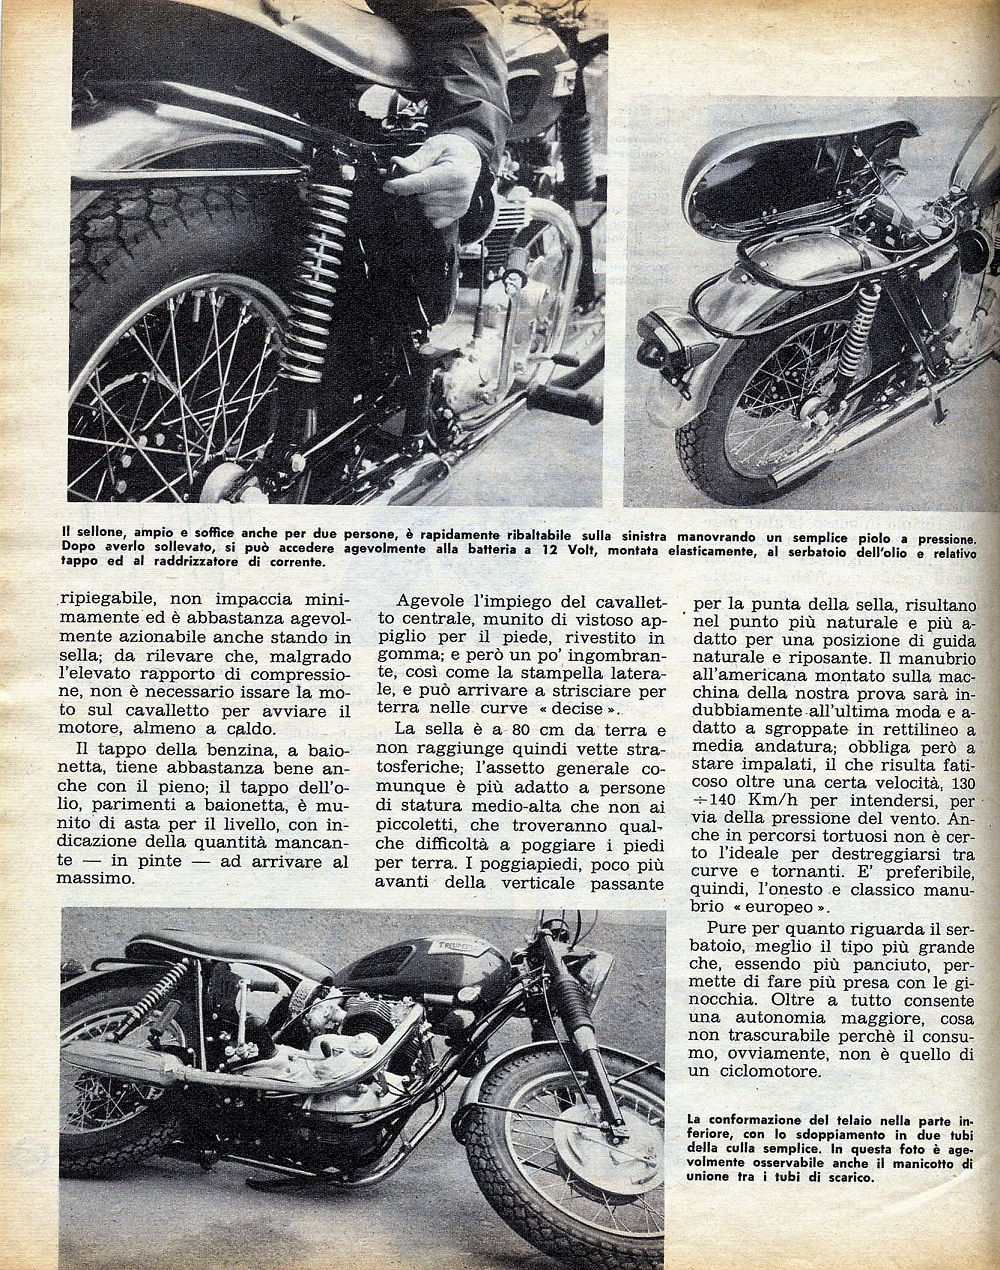 1969 Triumph Bonneville road test. 5.jpg